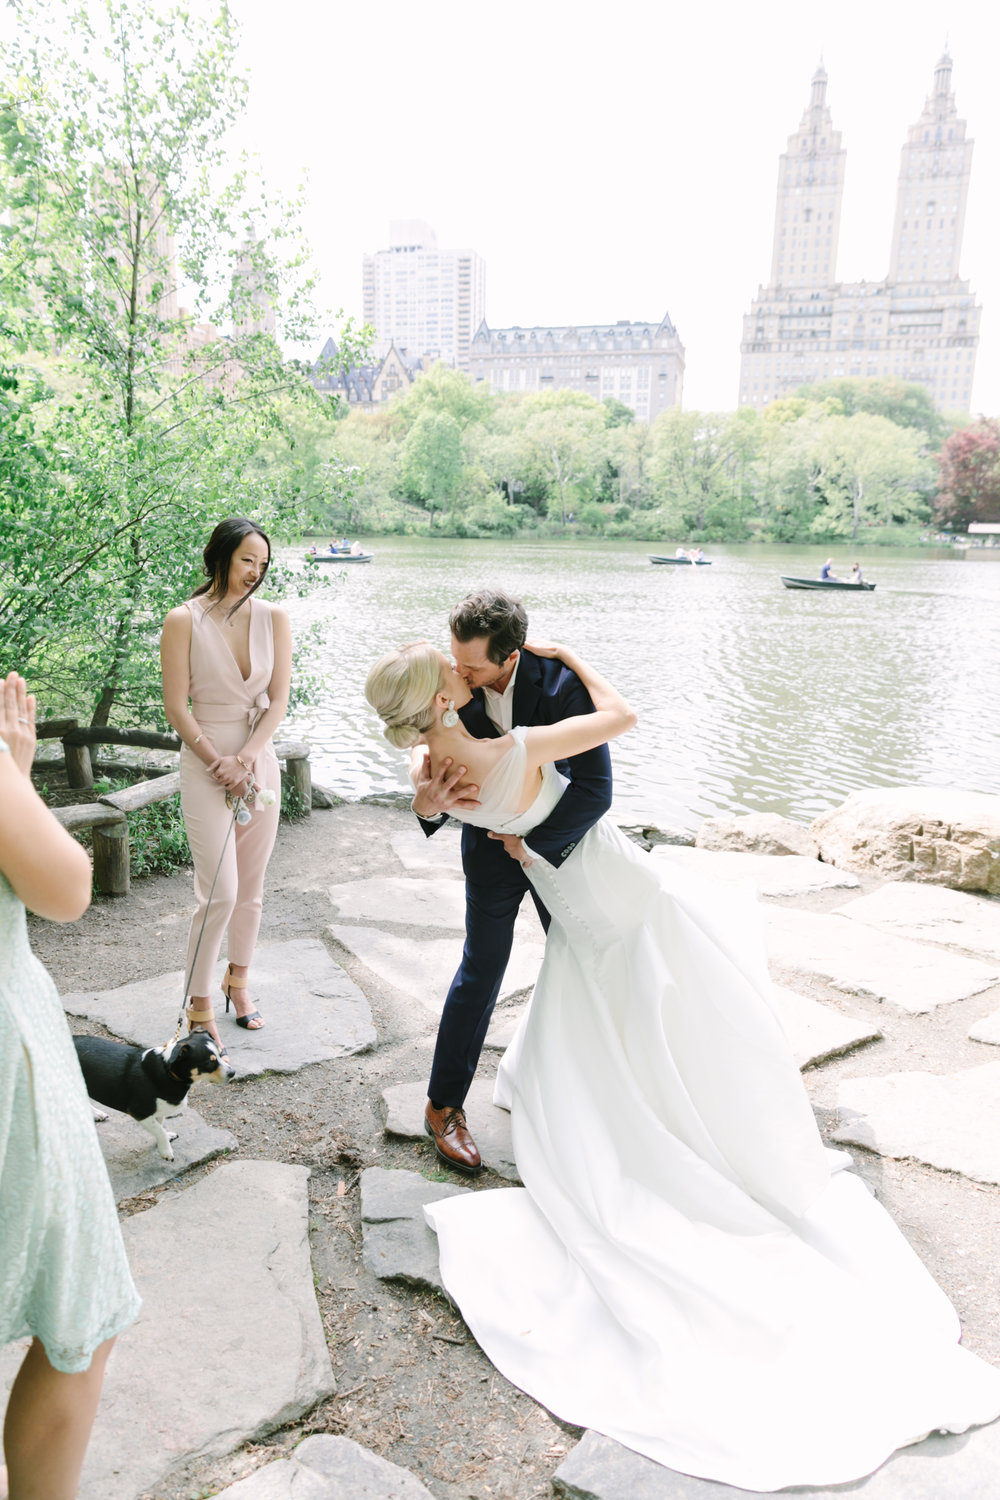 Intimate-NYC_wedding_ by Tanya Isaeva-105.jpg